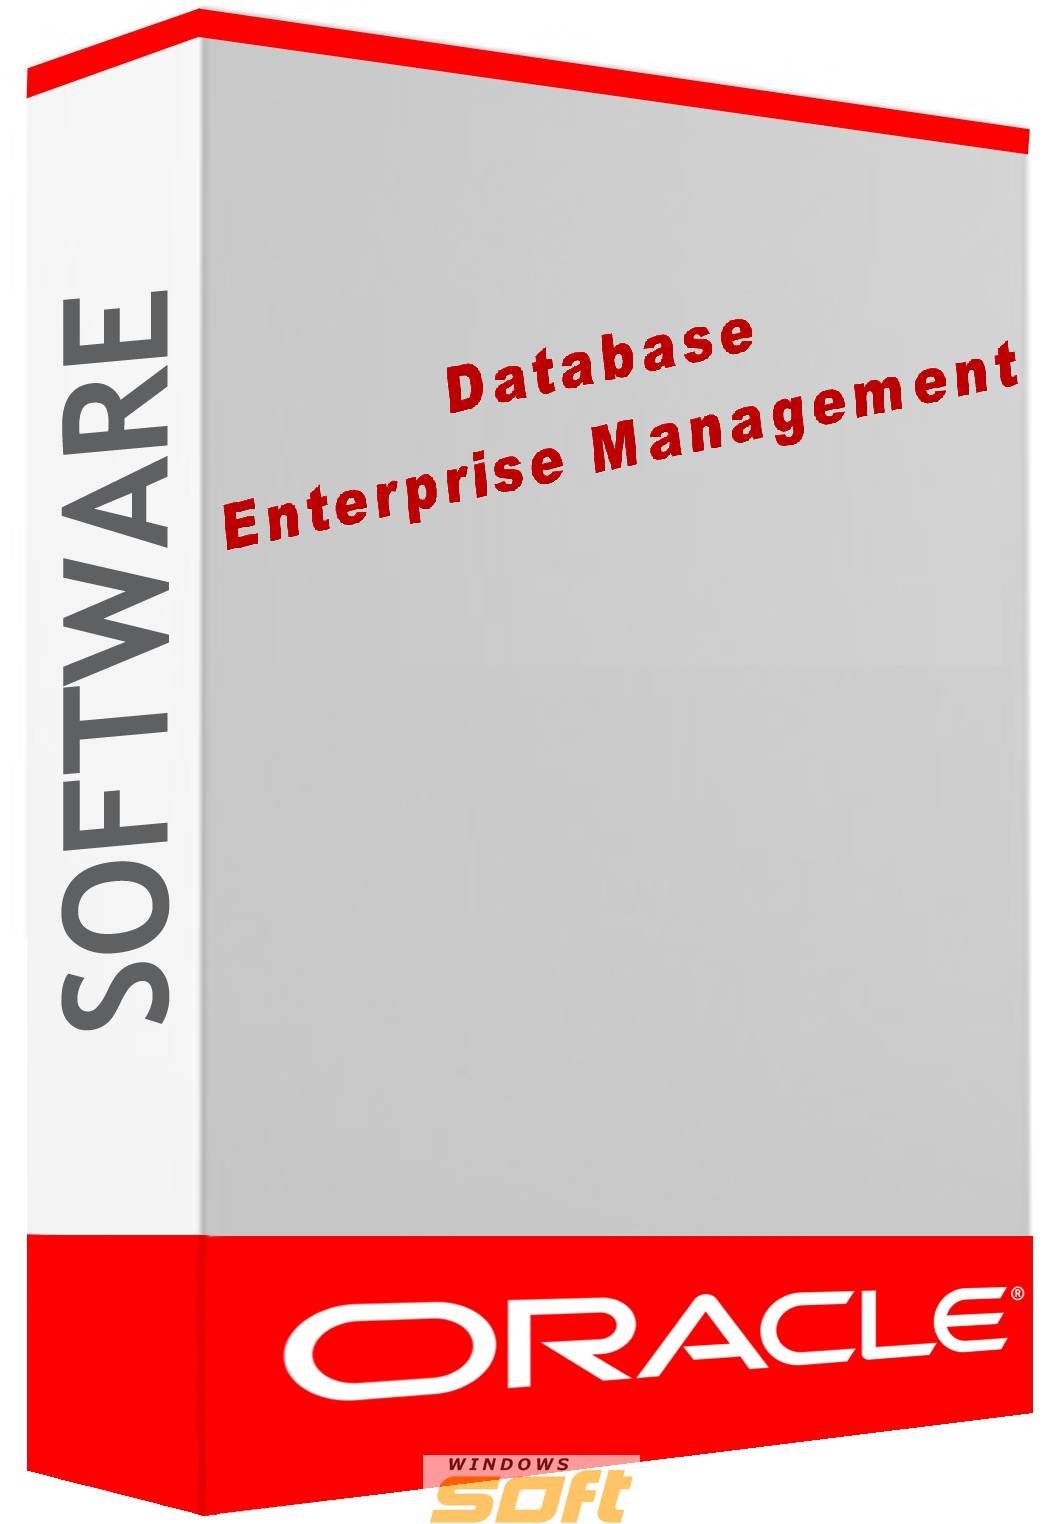 Купить Database Enterprise Management Diagnostics Pack Named User Plus 115-113-74-658-ORACLE-SL по доступной цене